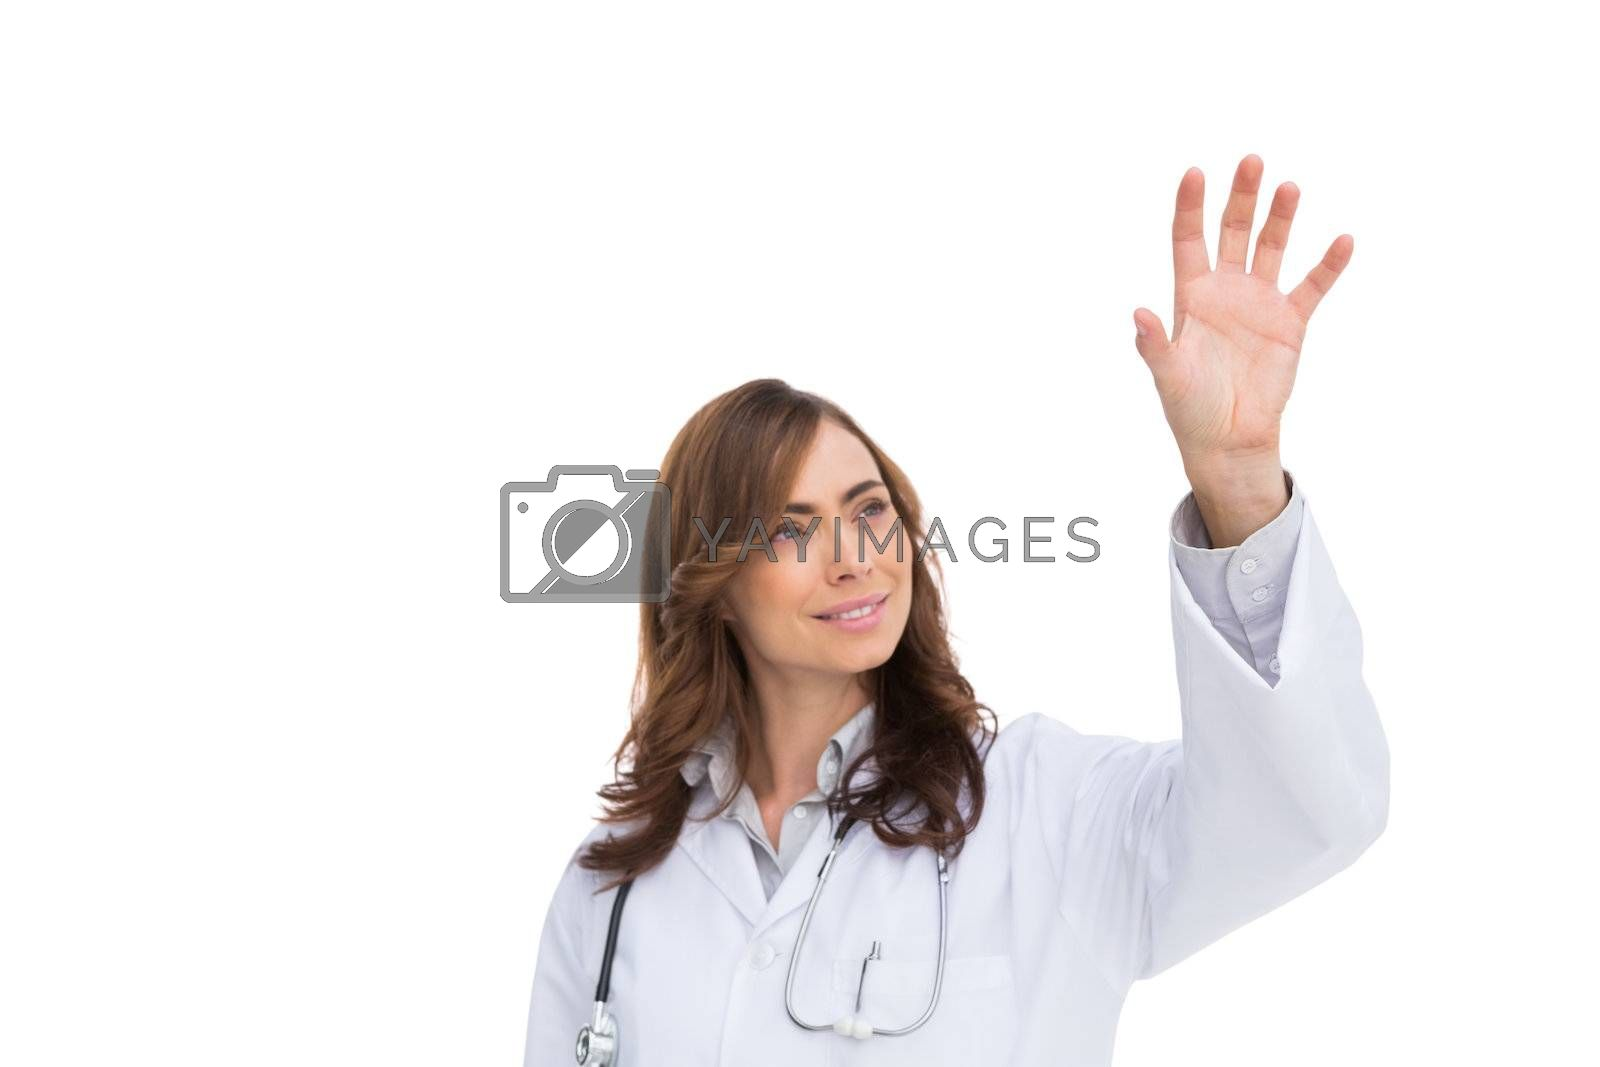 Brunette doctor reaching for something in the air by Wavebreakmedia